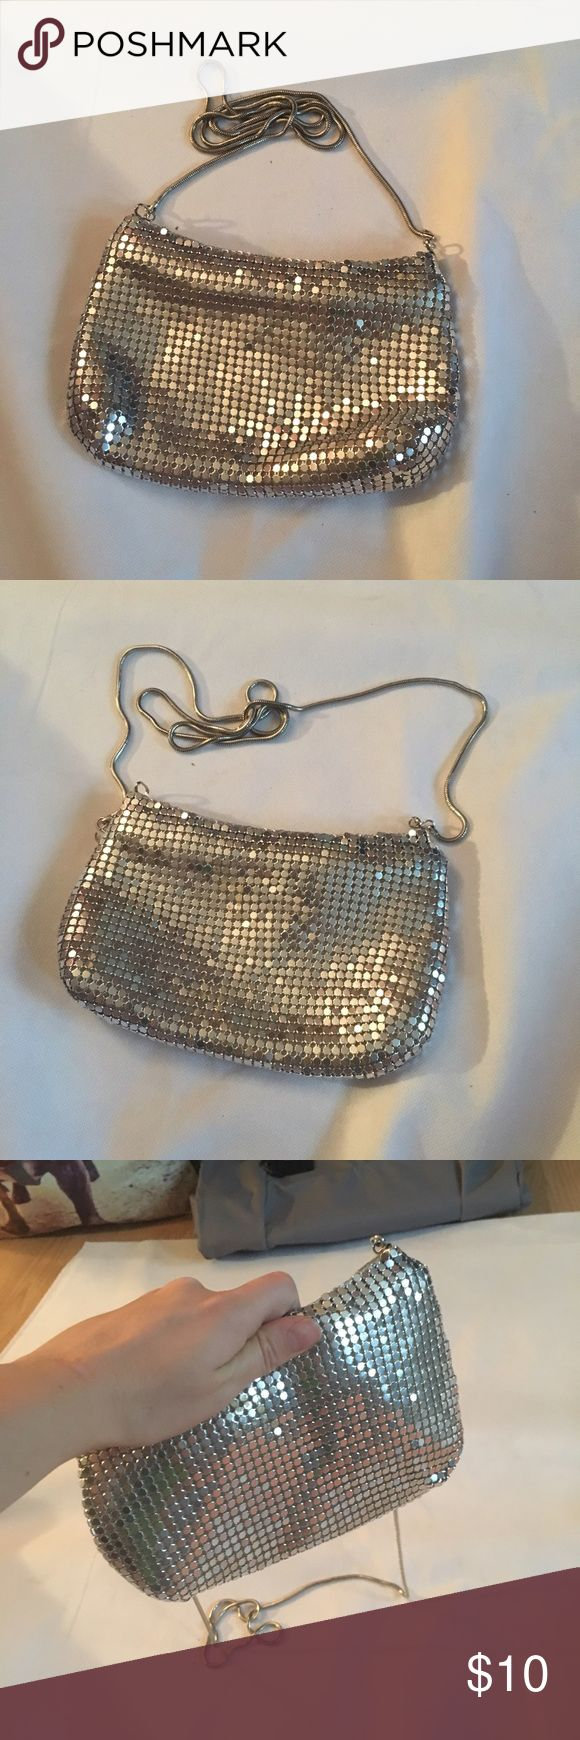 Adorable clutch size silver sequins/ metal purse Adorable clutch size silver sequins/ metal purse. Great for prom/ dance/ formal occasion Bags Clutches & Wristlets